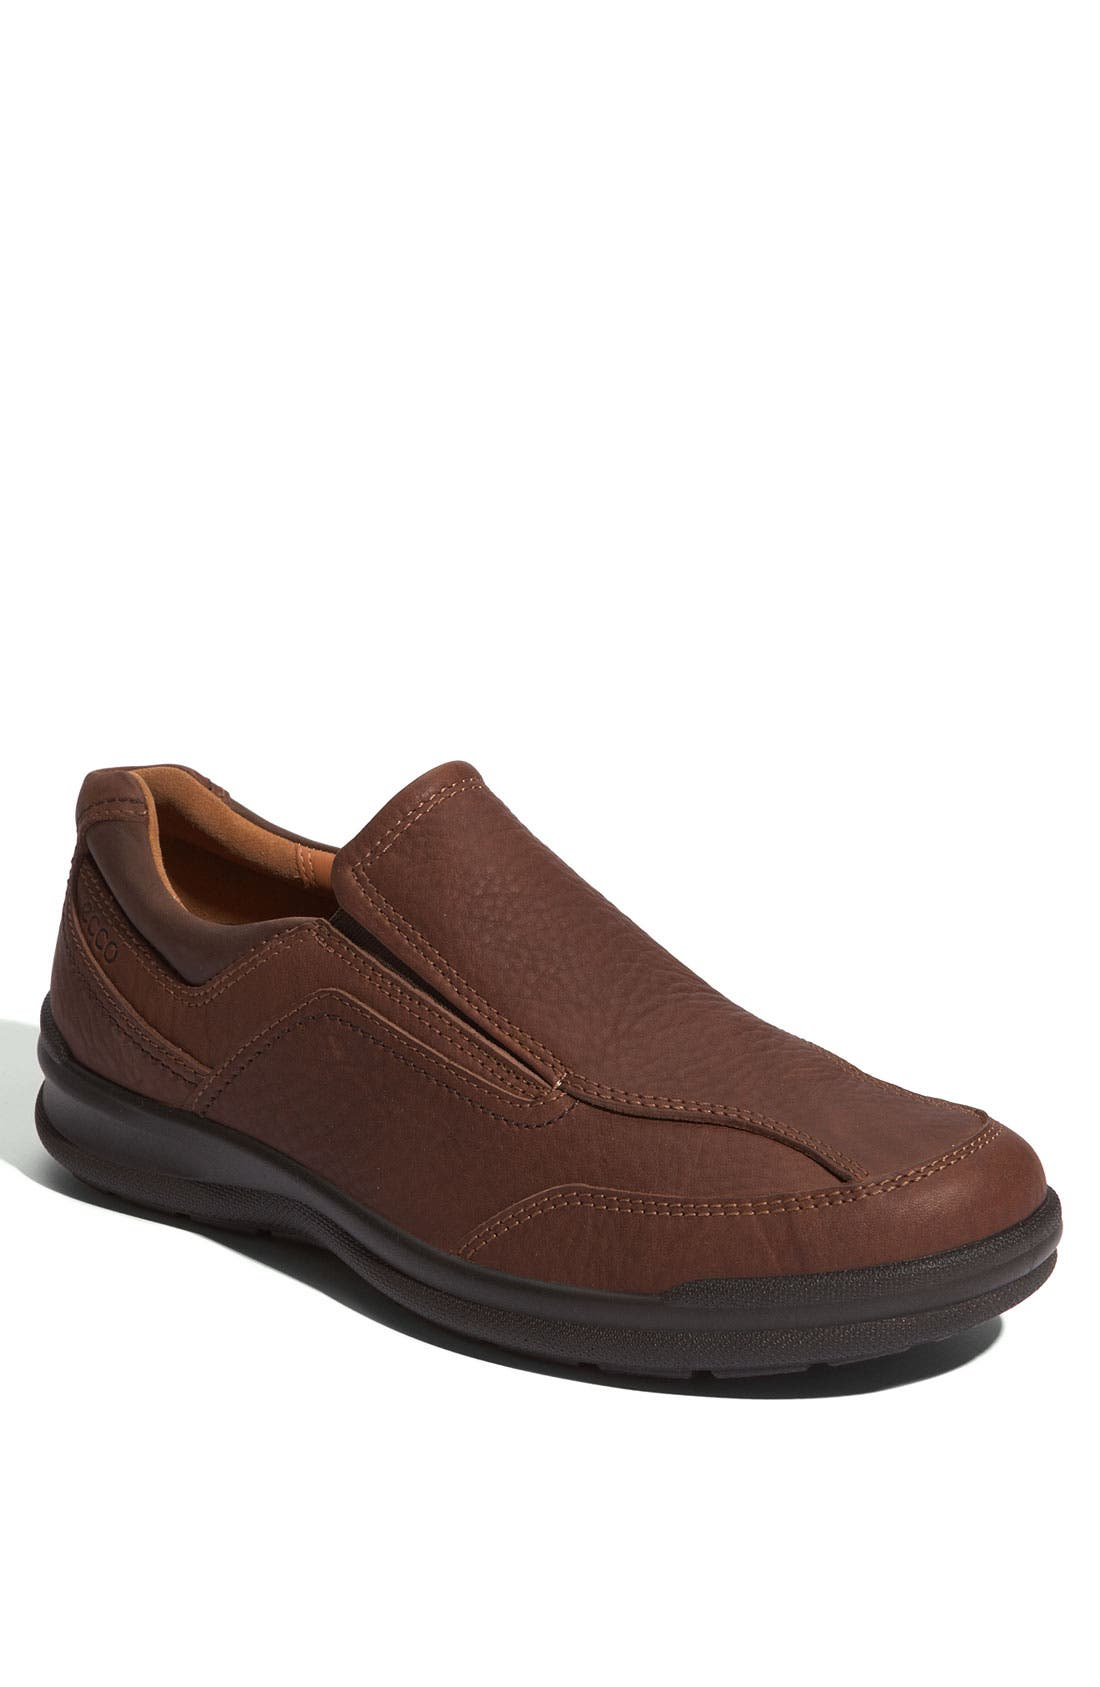 Alternate Image 1 Selected - ECCO 'Remote' Slip-On